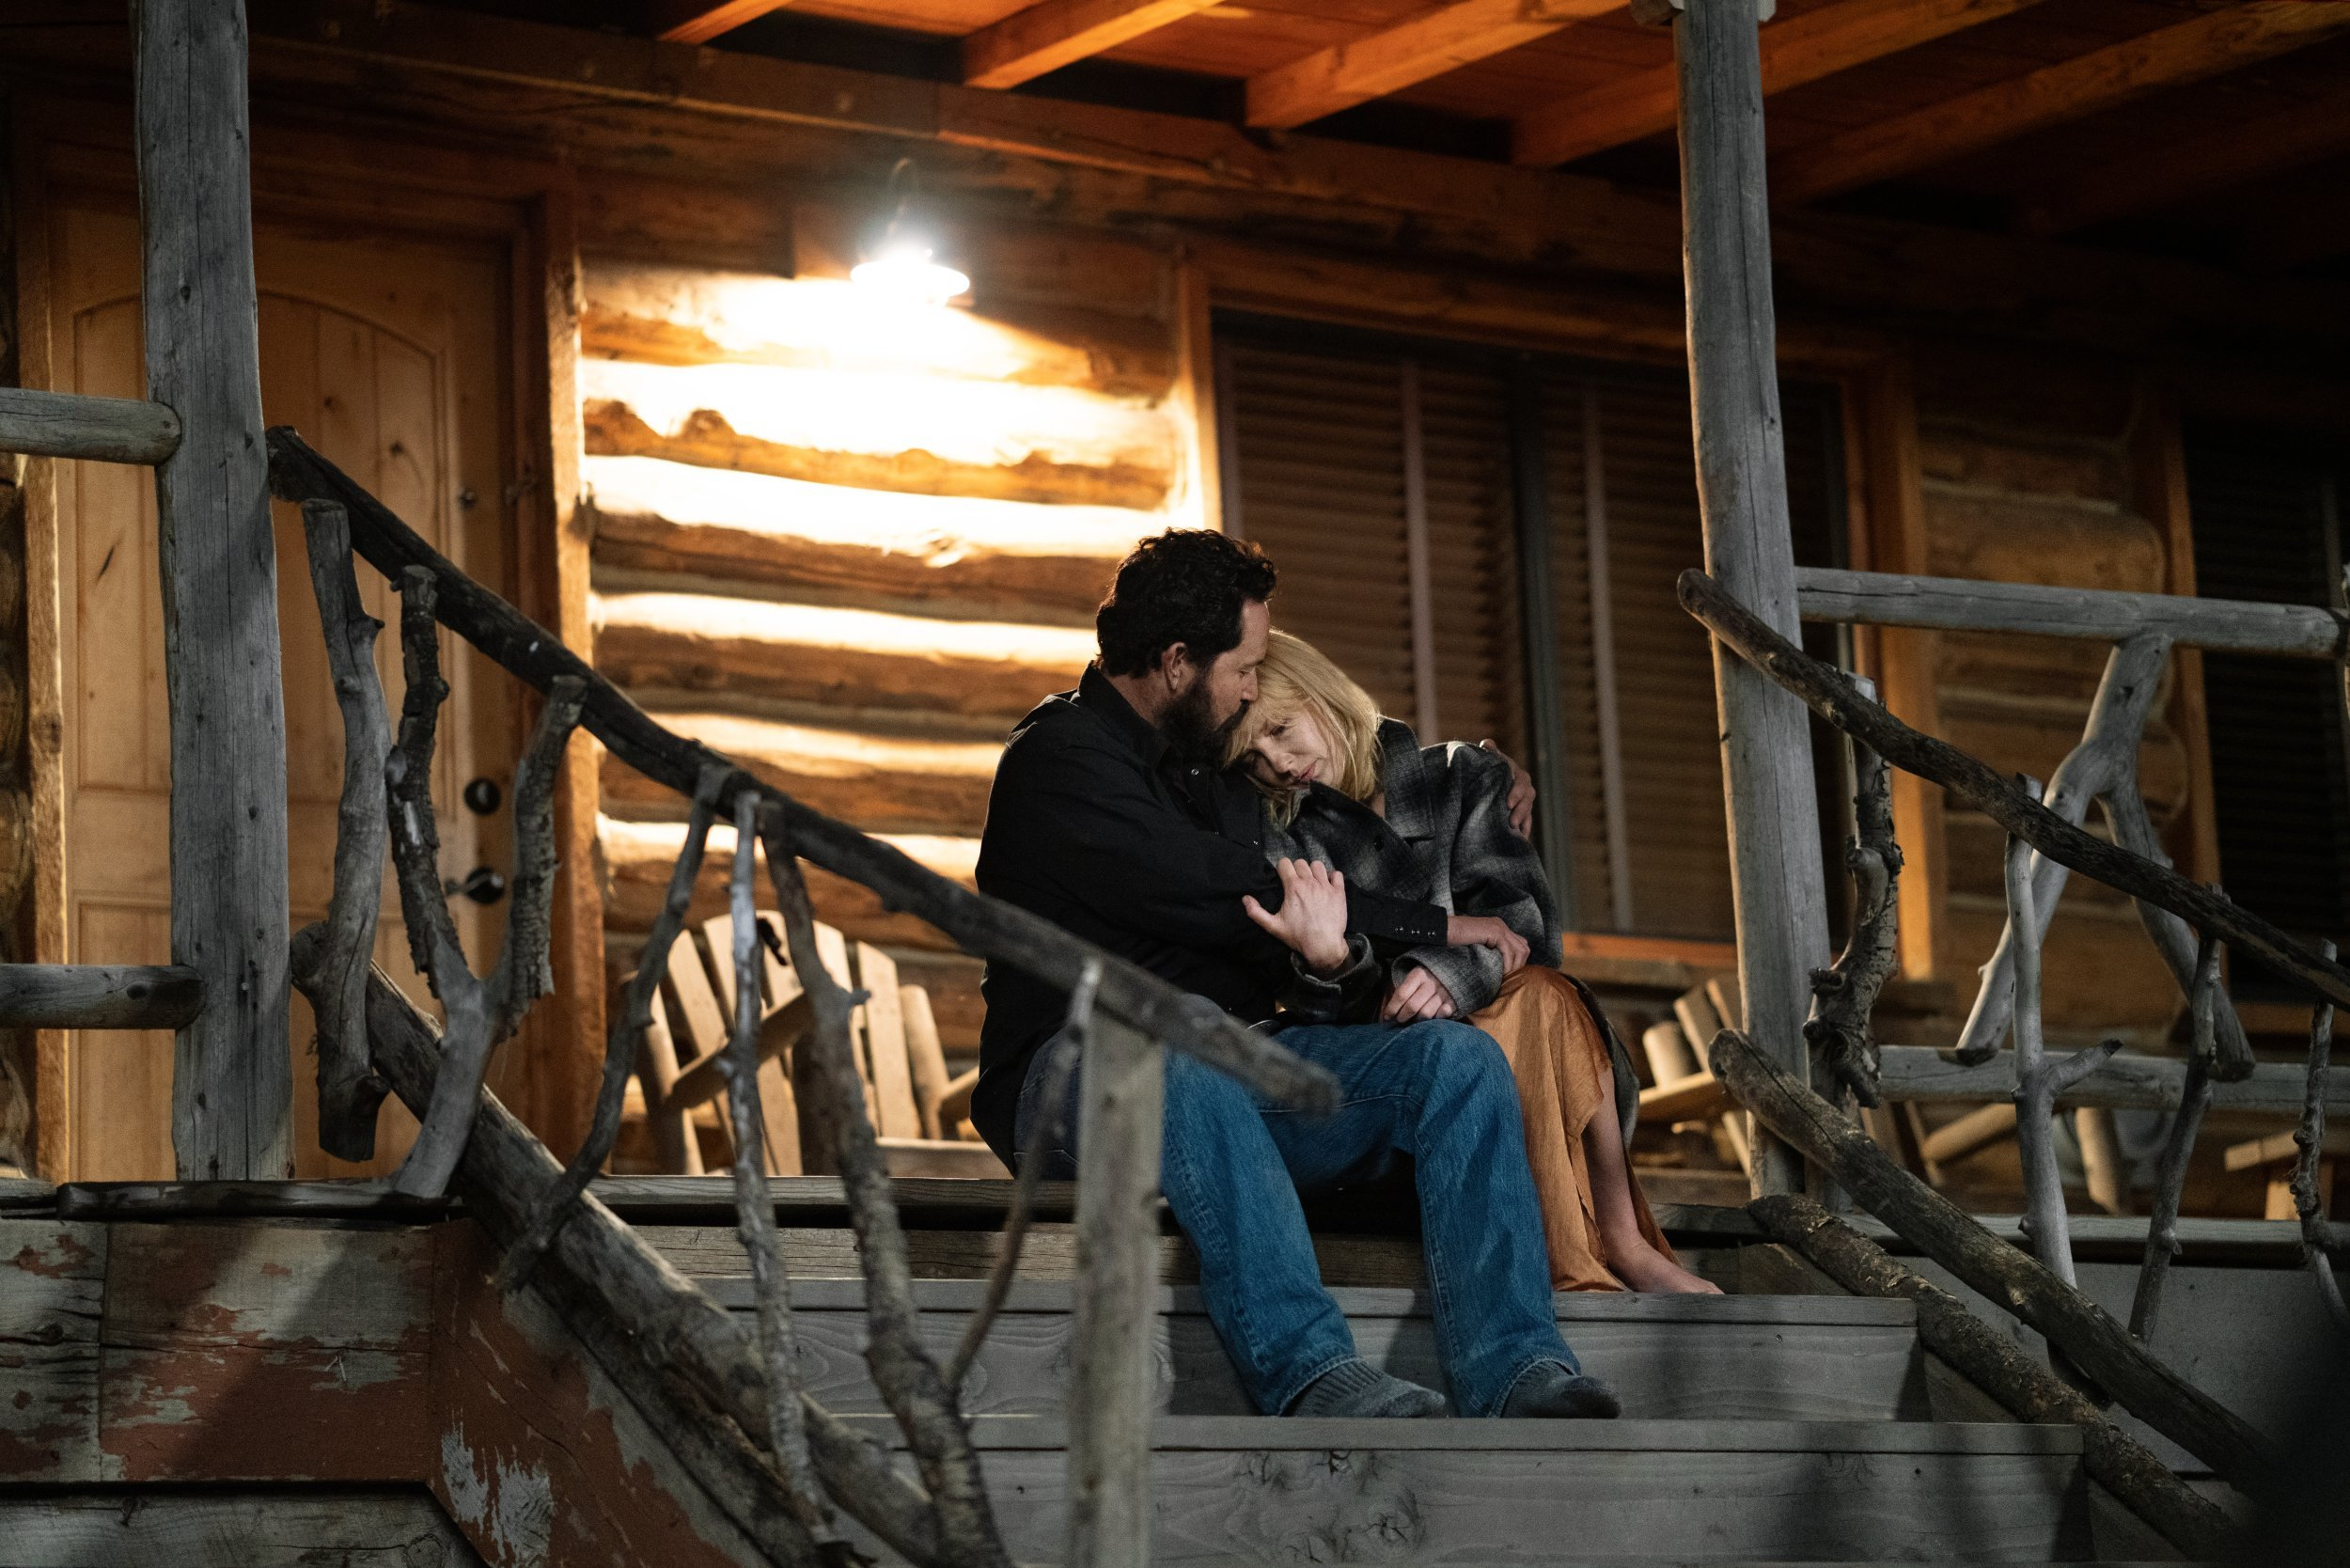 3x05 - Cowboys and Dreamers - Rip and Beth